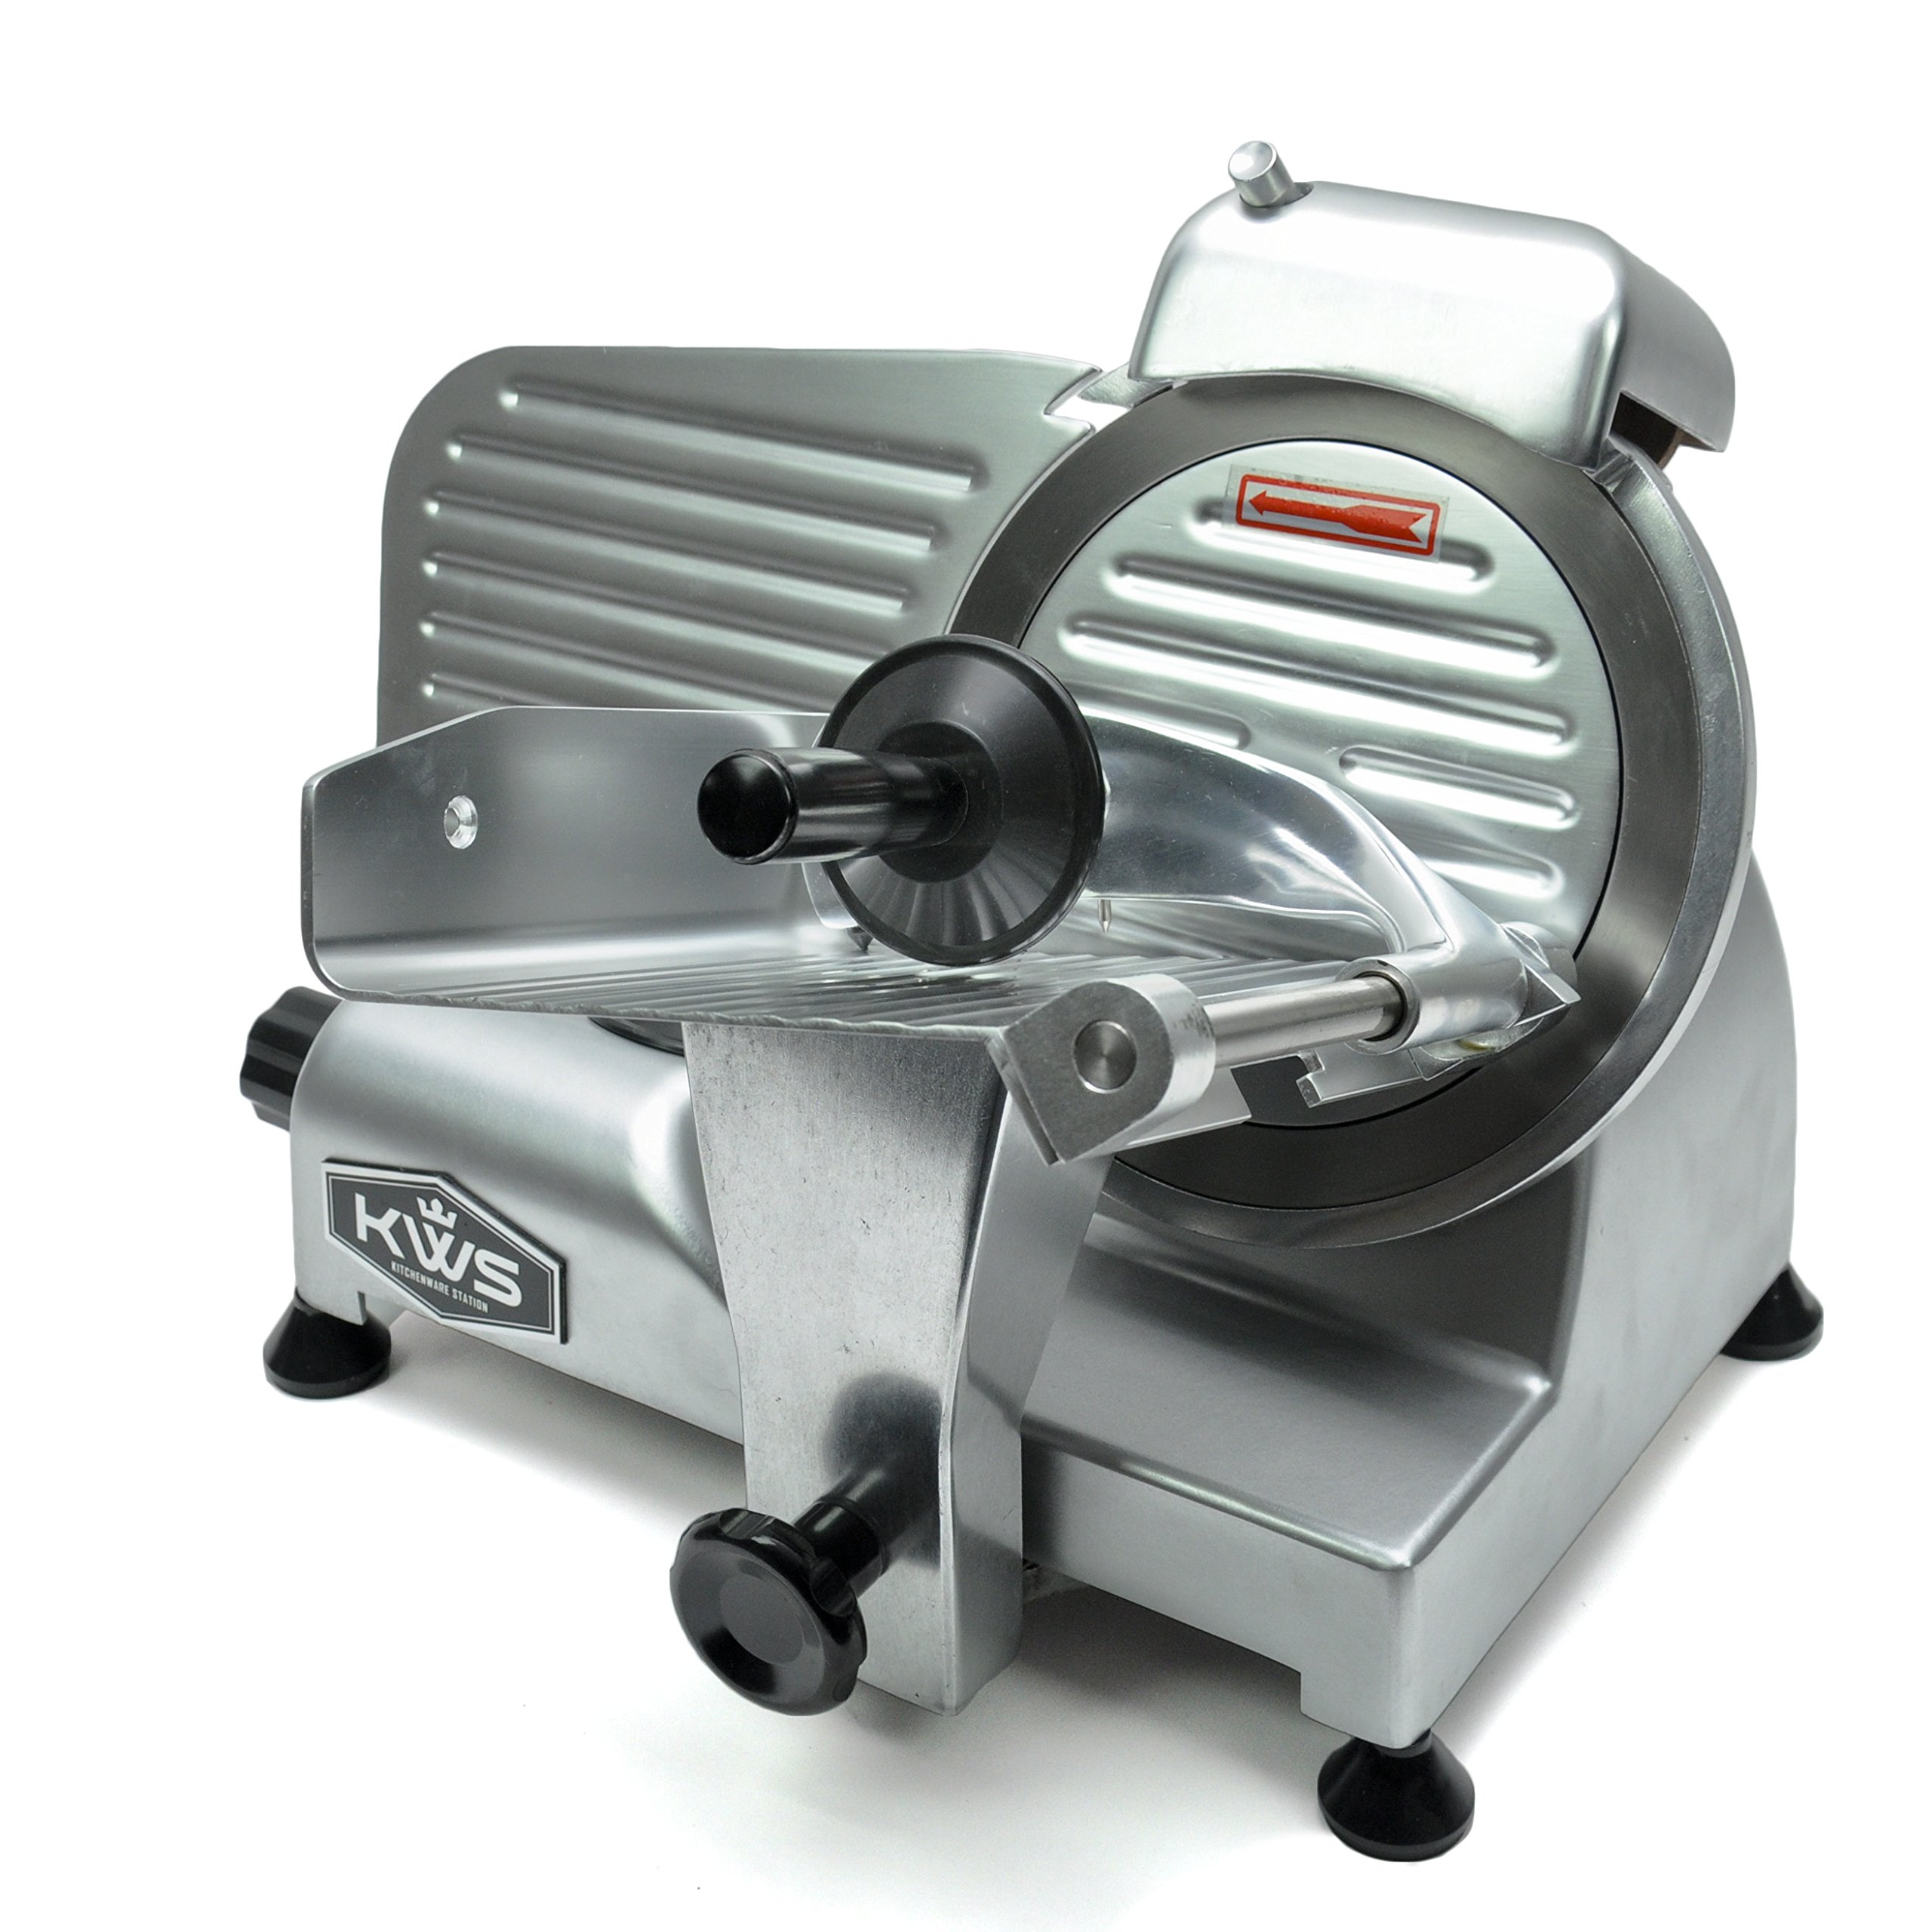 KWS Premium 200w Electric Meat Slicer 6'' Frozen Meat Deli Slicer Coffee Shop/restaurant and Home Use Low Noises (Silver)